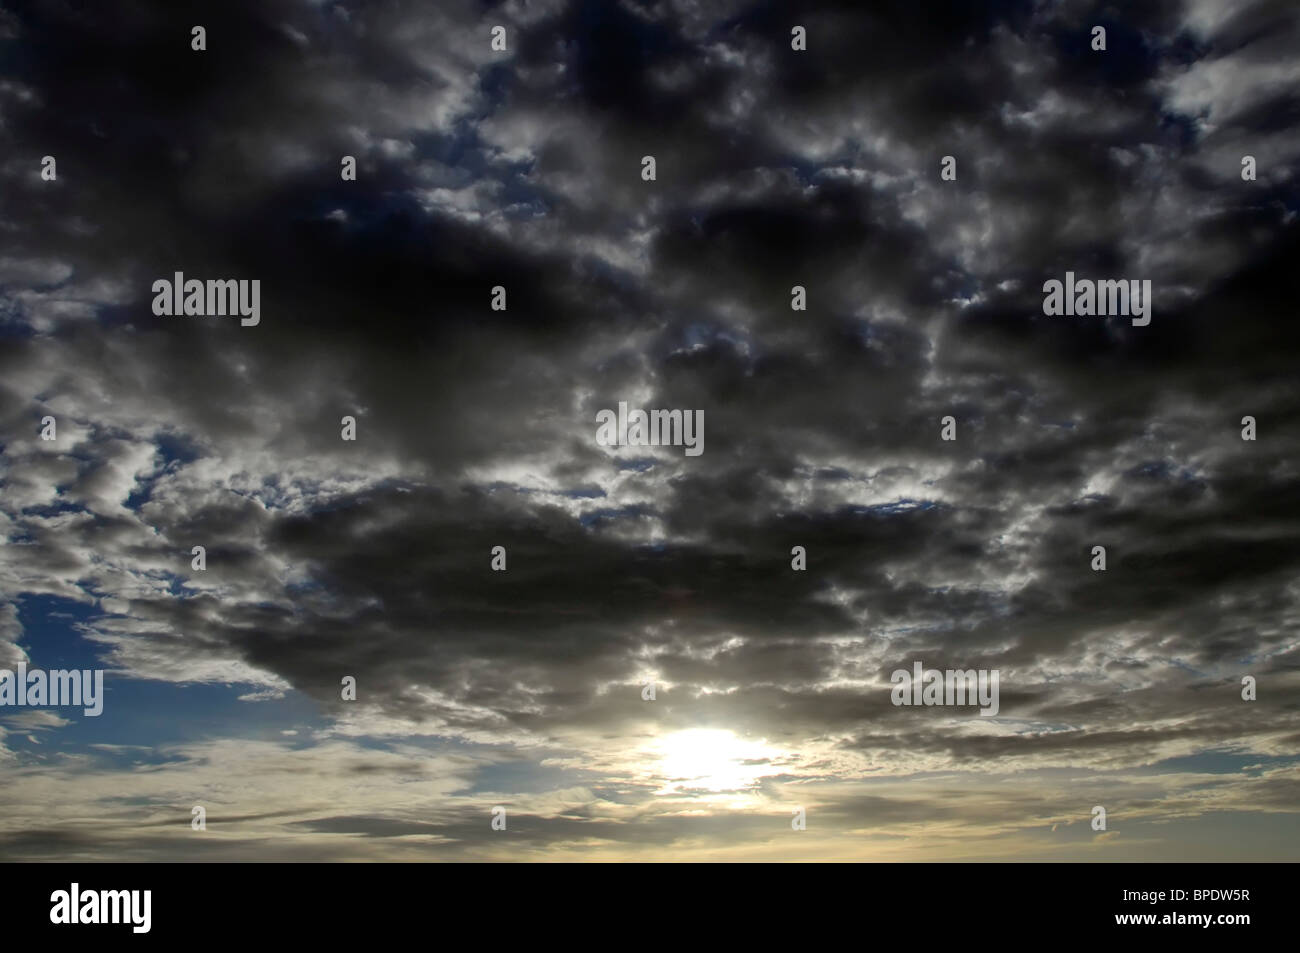 Dark black shower clouds just before sunset - Stock Image